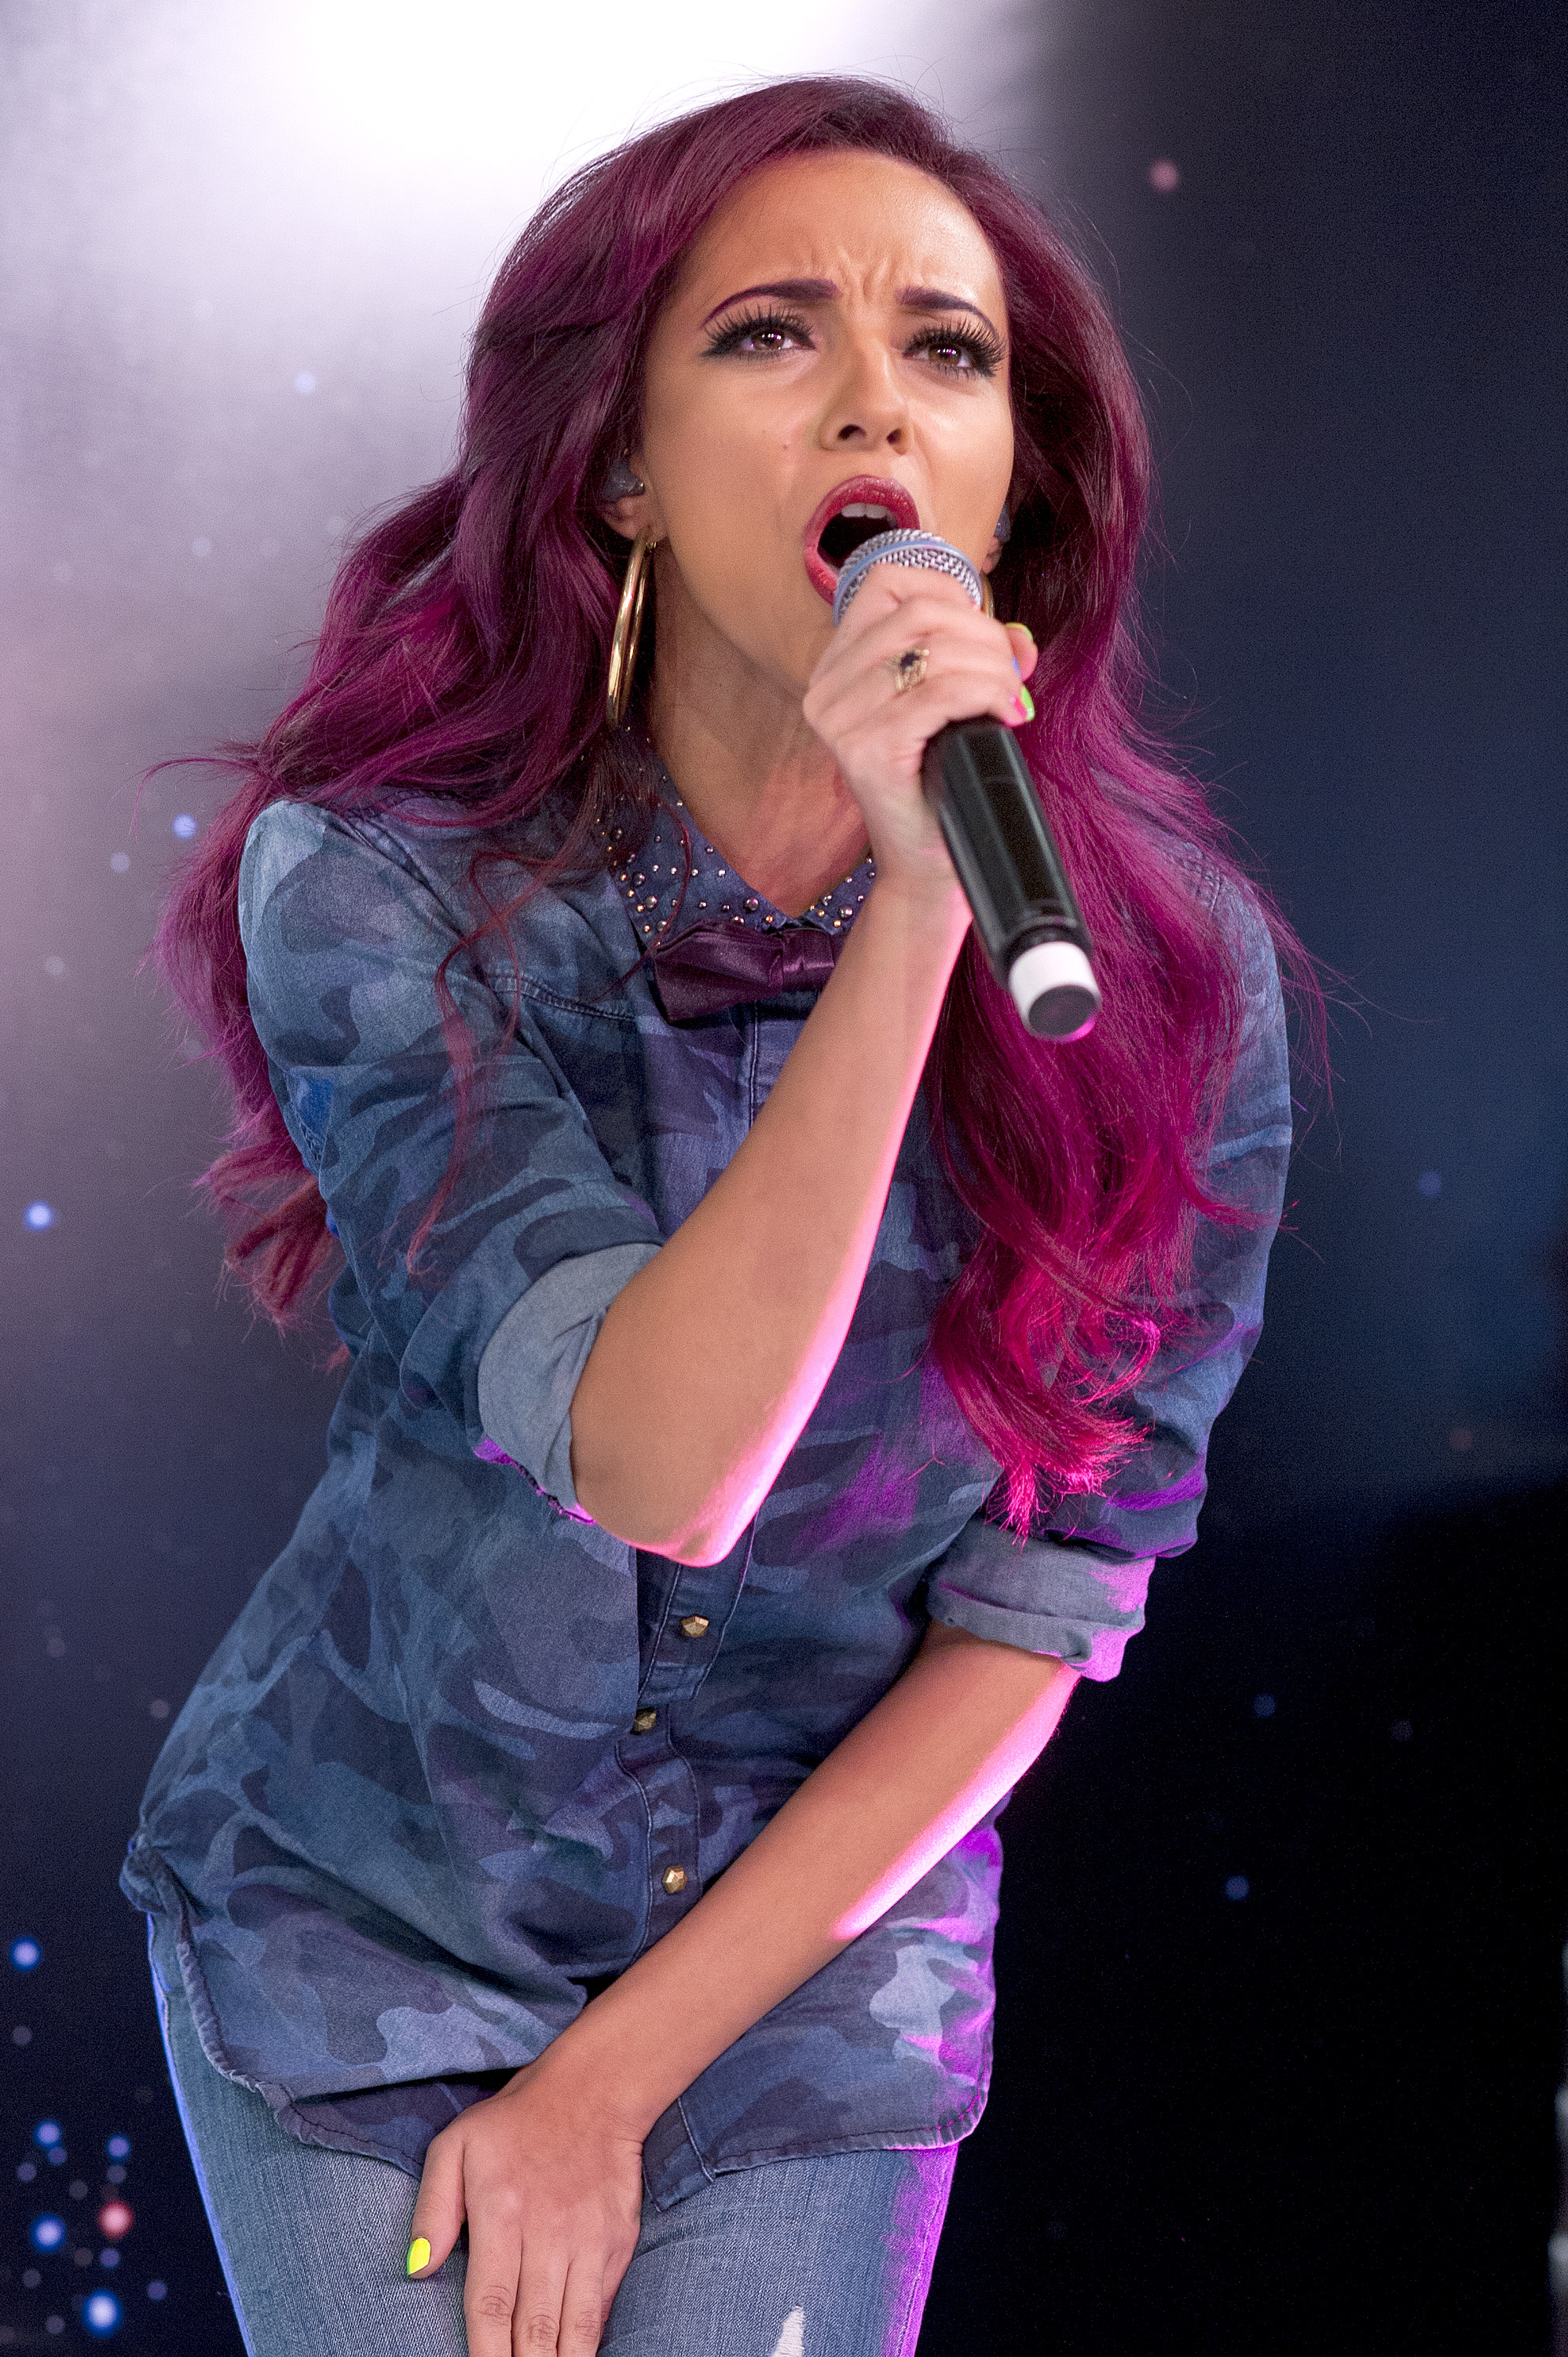 jade thirlwall, purple hair, little mix, cheveux mauves, jade thirlwall hair, little mix concert, mode, fashion